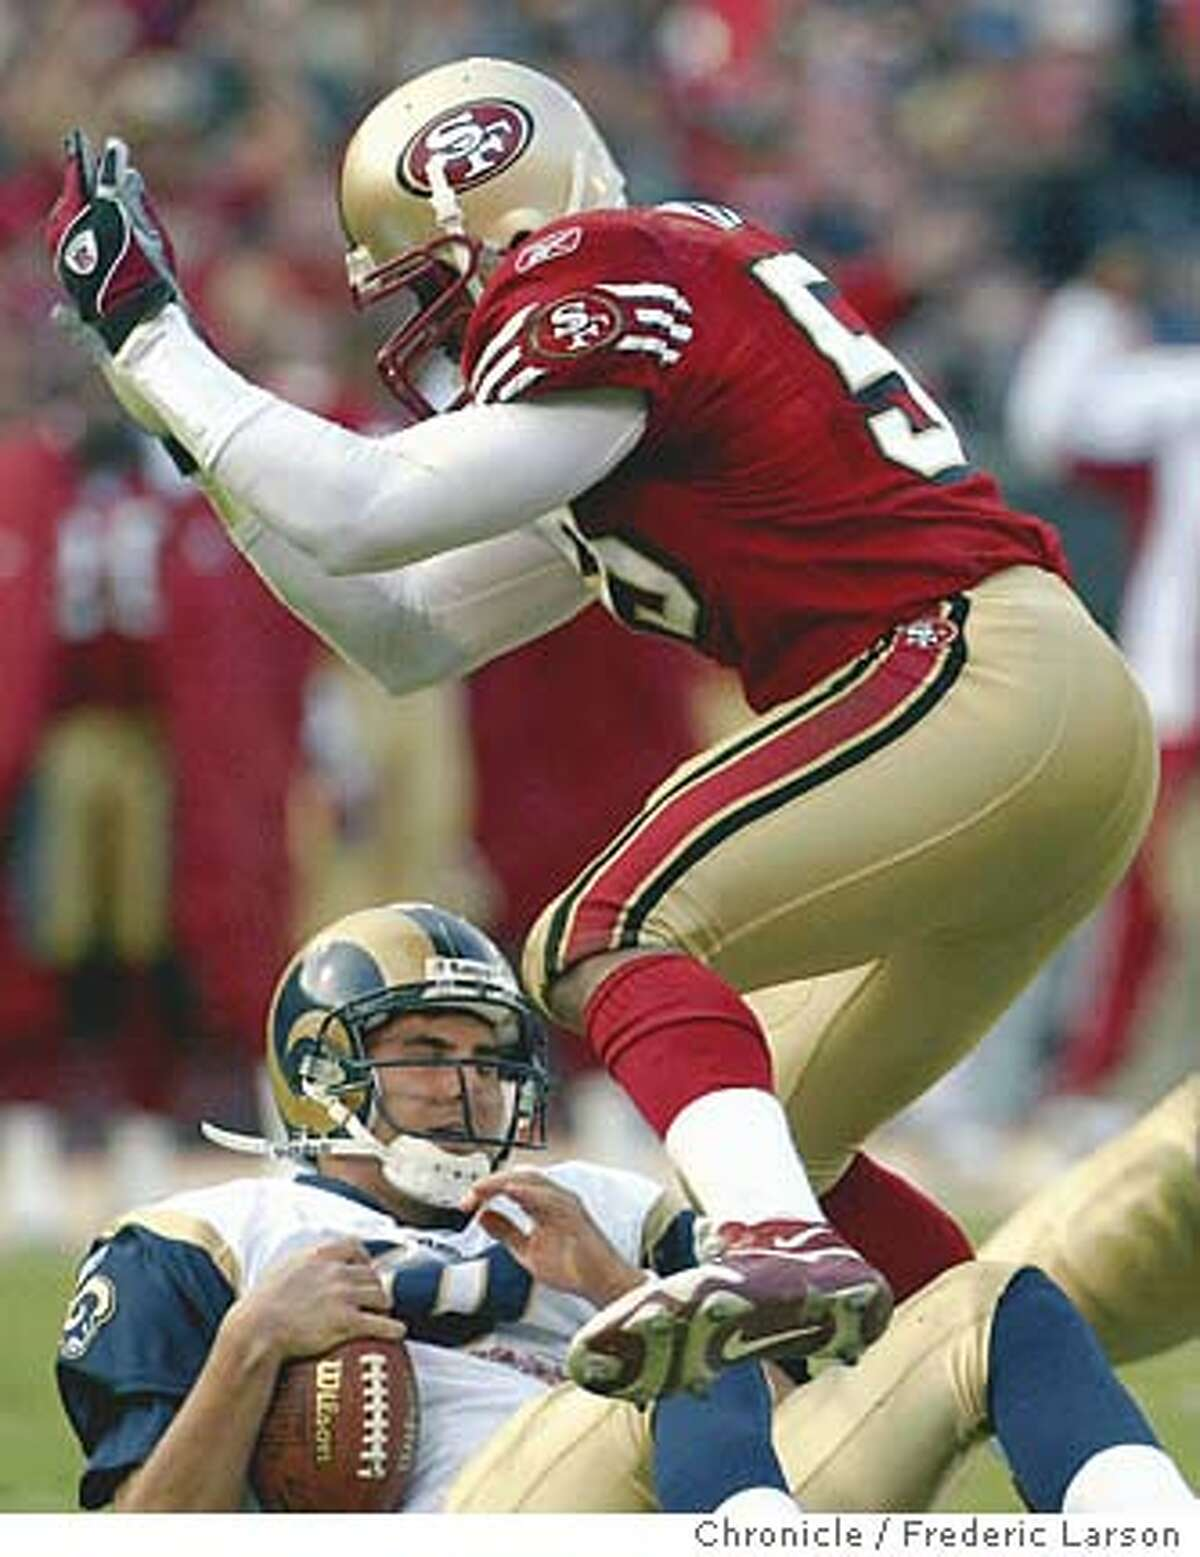 ; 49ers Jamie Winborn sacks Rams QB Marc Bulger in the 4th quarter to stall any comes back drive by the St Louis Rams. San Francisco 49ers beat the St. Louis Rams at Candlestick Park, 30-10. FREDERIC LARSON / The Chronicle